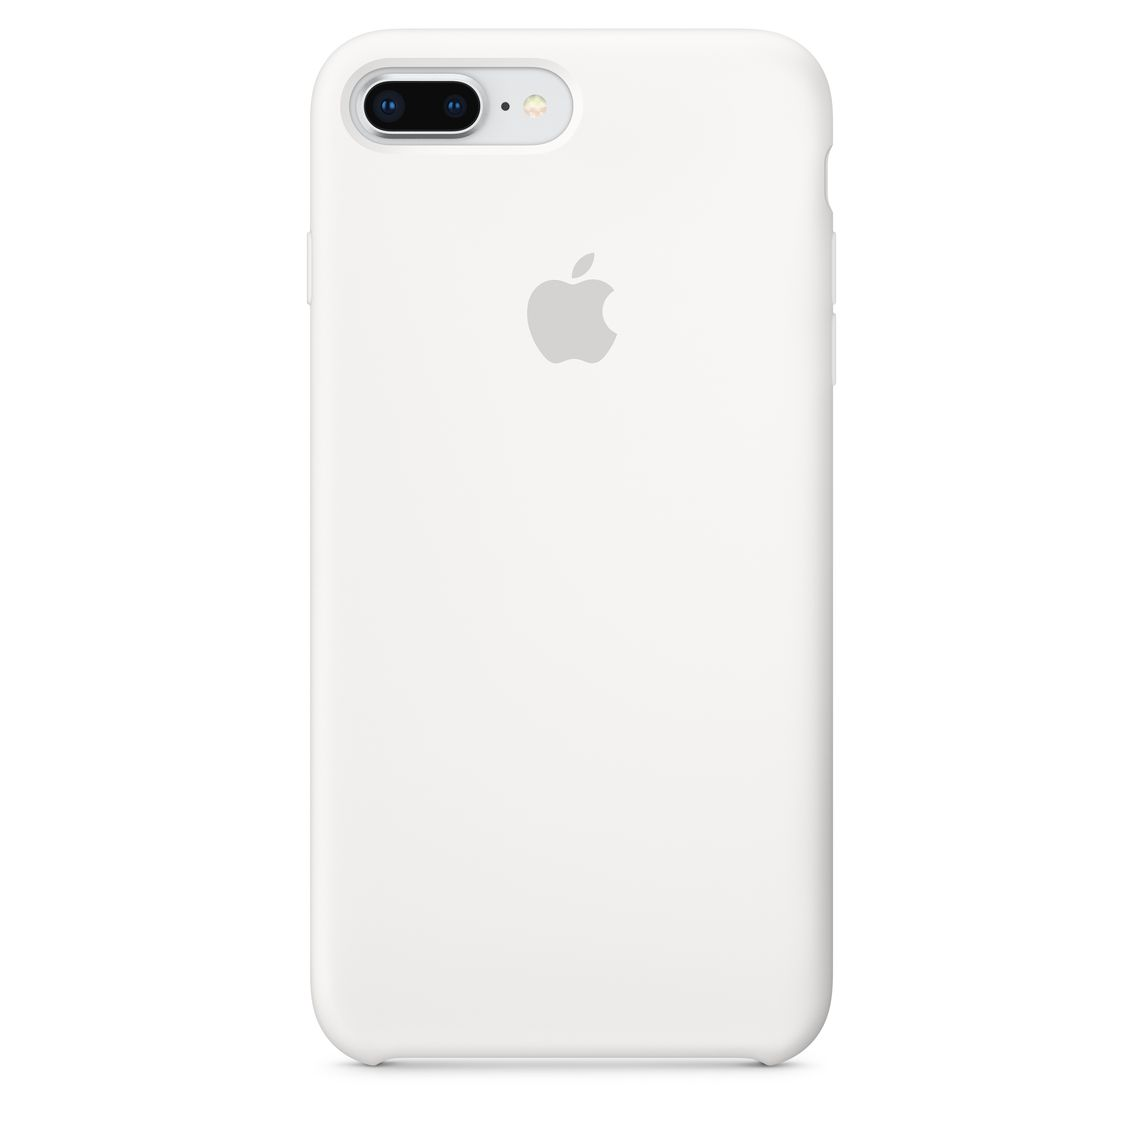 100% authentic afda3 e82db iPhone 8 Plus / 7 Plus Silicone Case - White - Apple (PH)